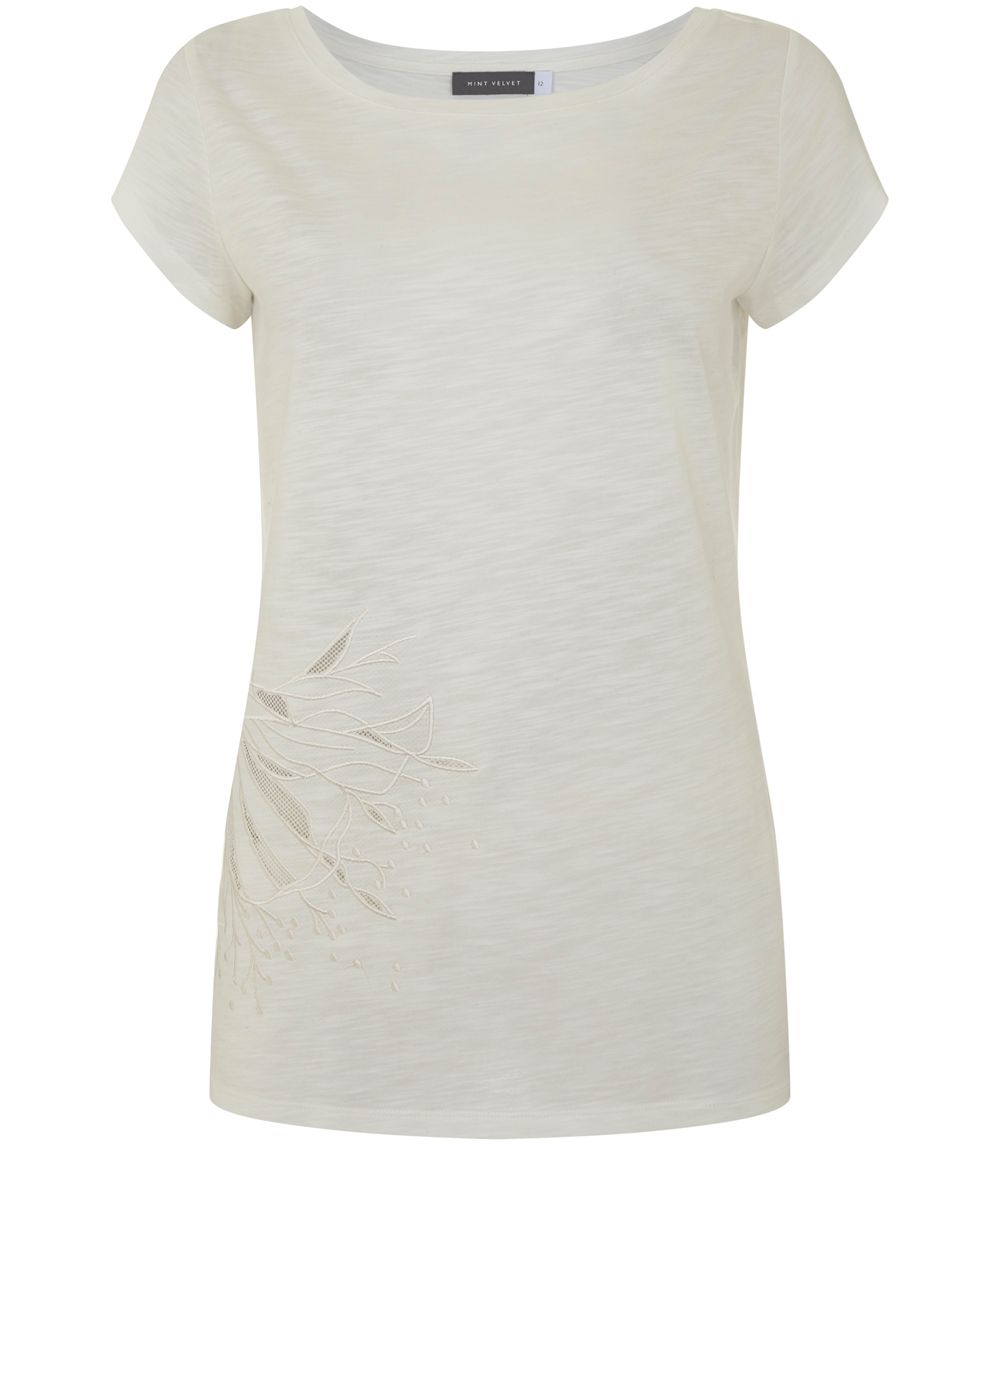 Mint Velvet Ivory Cutwork Flower Tee, White